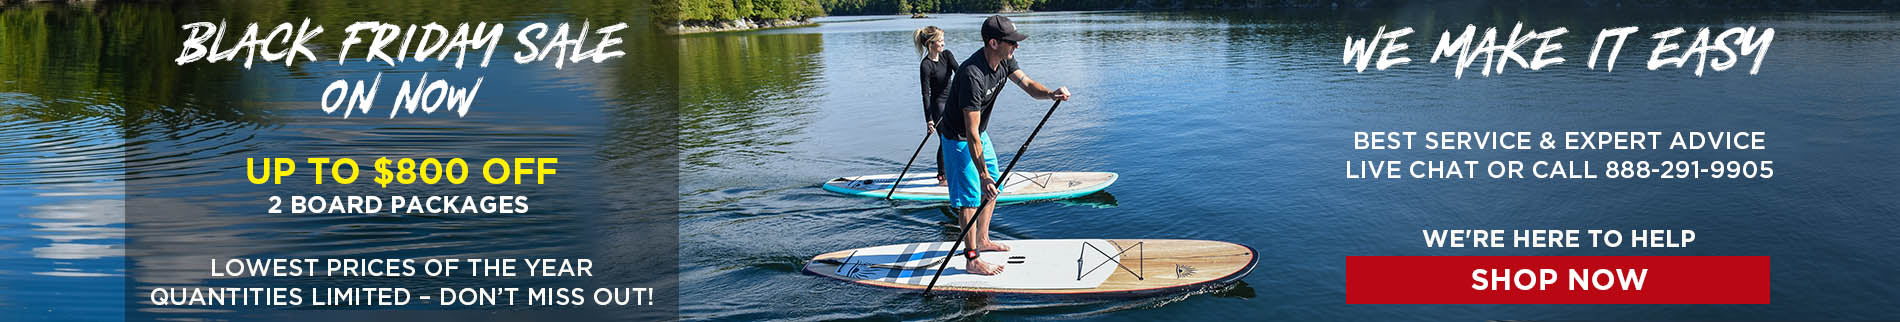 Black Stand Up Paddle Boards